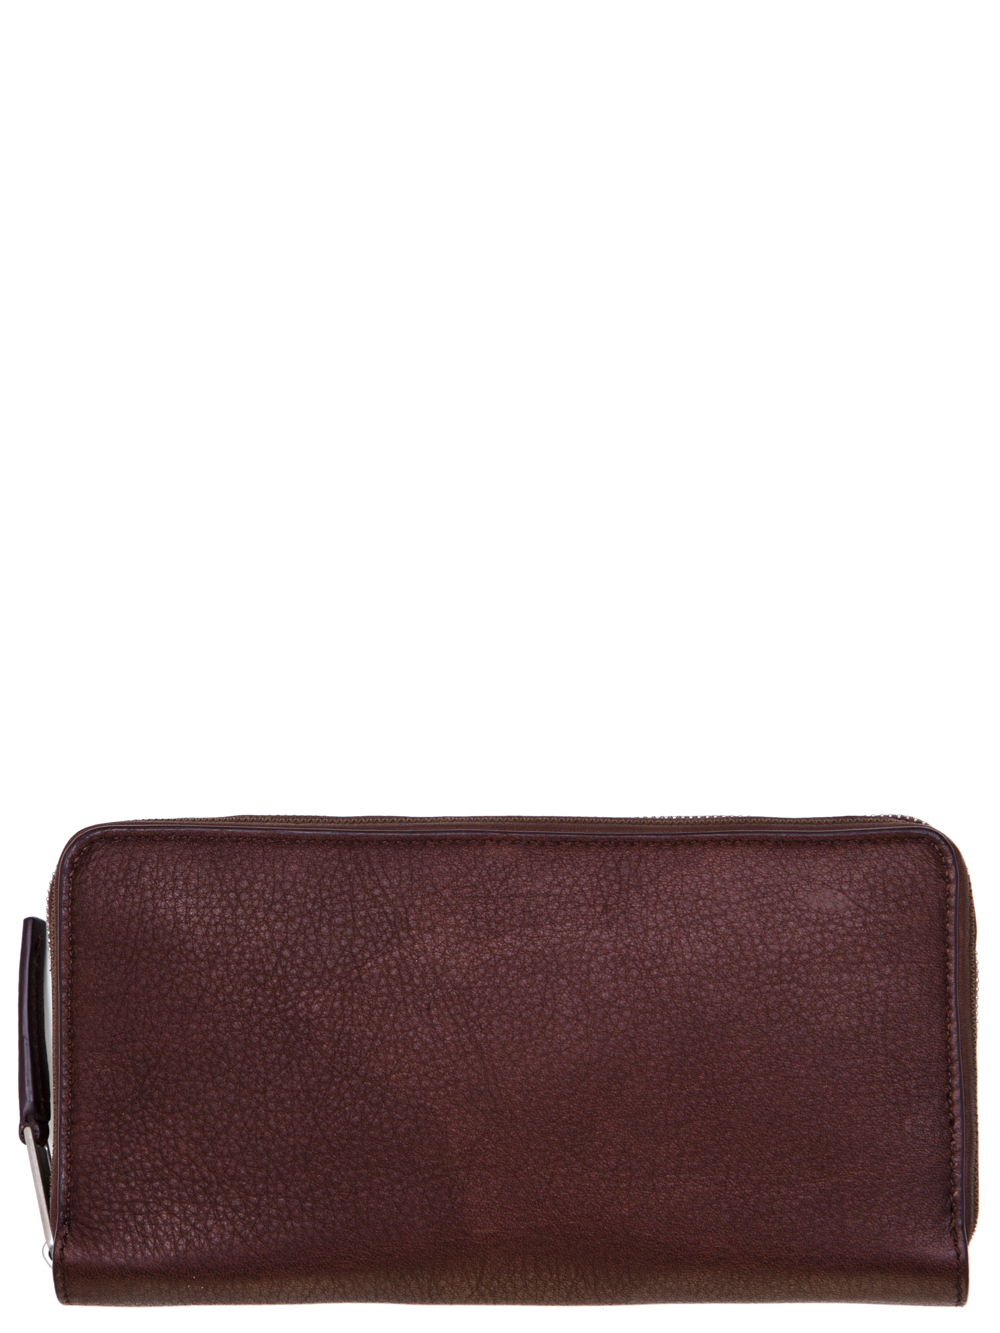 RICK OWENS SS19 BABEL CONTINENTAL WALLET IN BLOOD BROWN CALF LEATHER